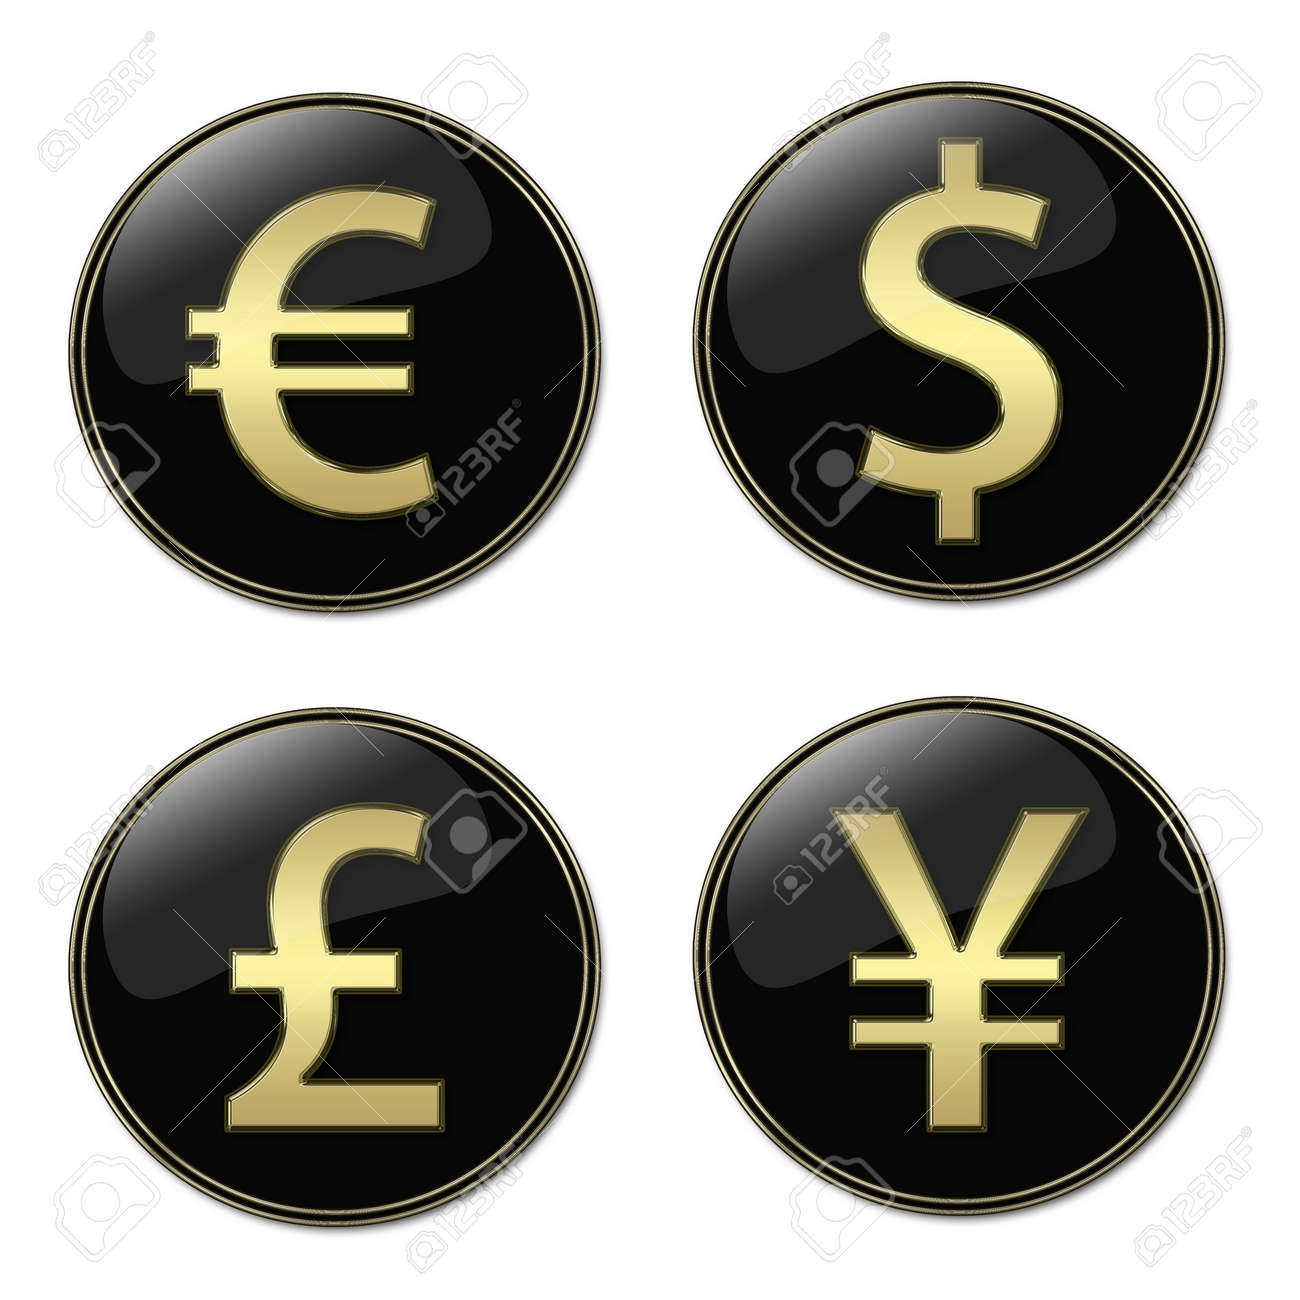 Aed currency symbol choice image symbol and sign ideas four different currencies signs buttons stock photo picture and four different currencies signs buttons stock photo biocorpaavc